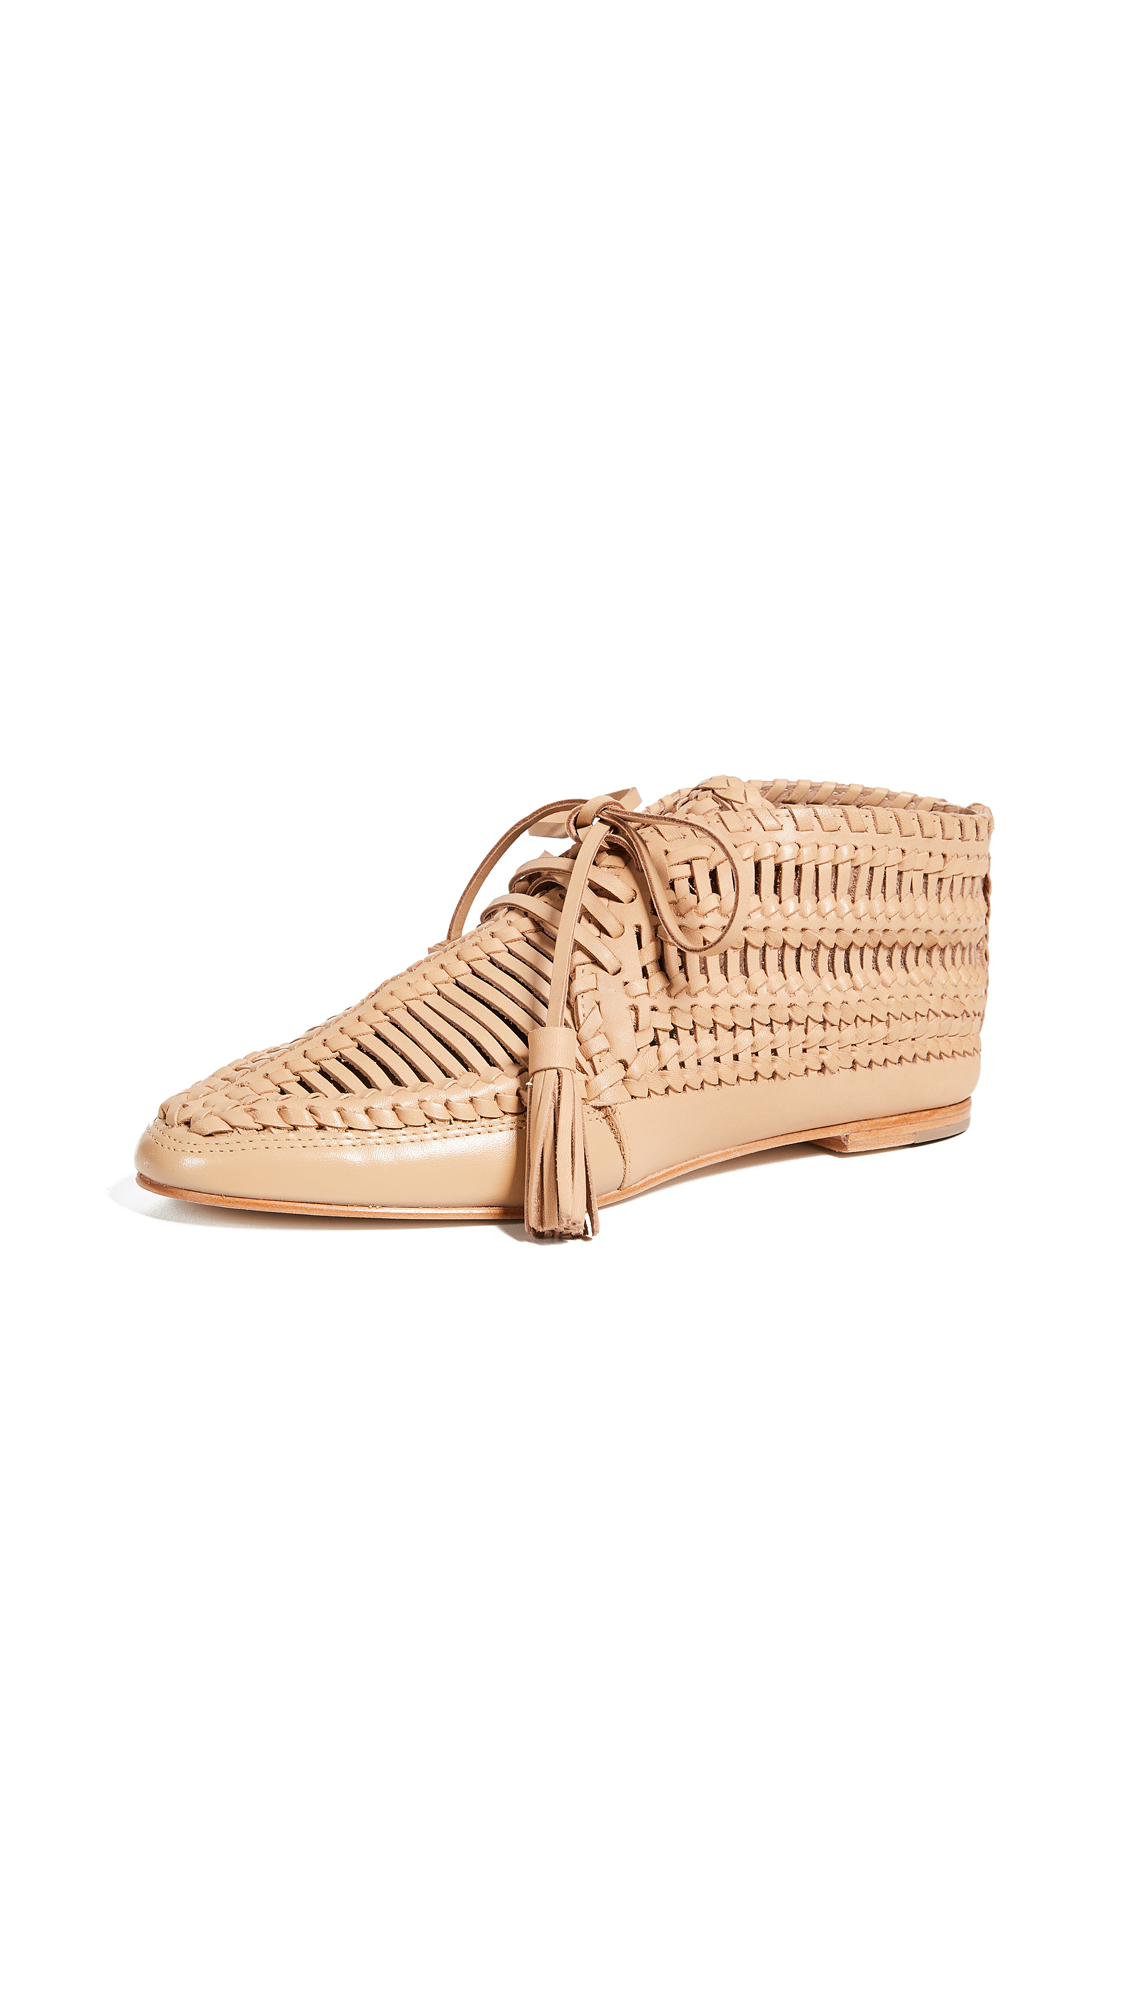 Ulla Johnson Nikola Moccasins - Latte